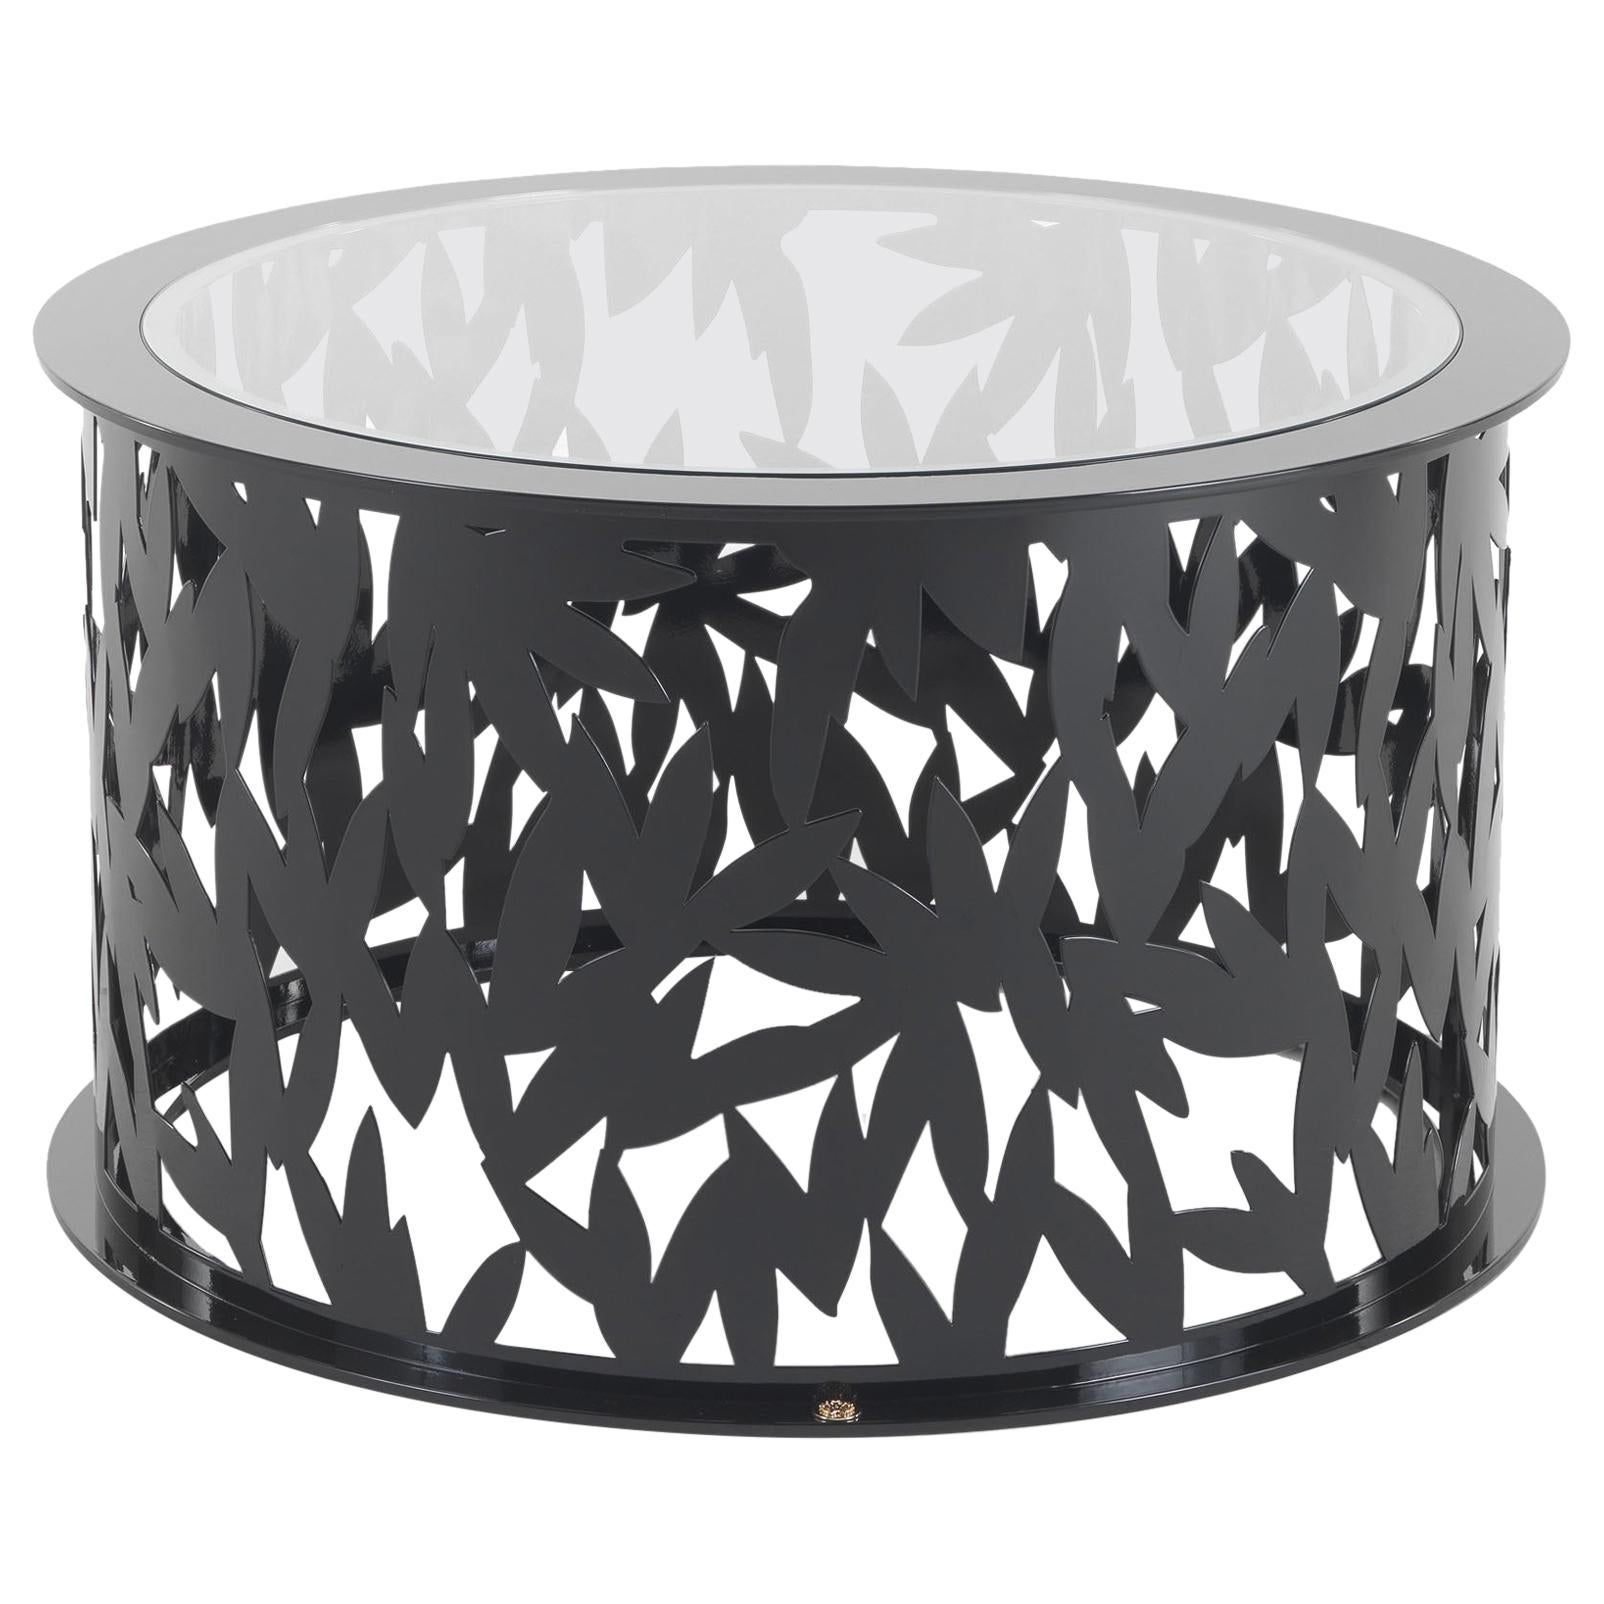 Lace Central Outdoor Table with Glass Top by Roberto Cavalli Home Interiors